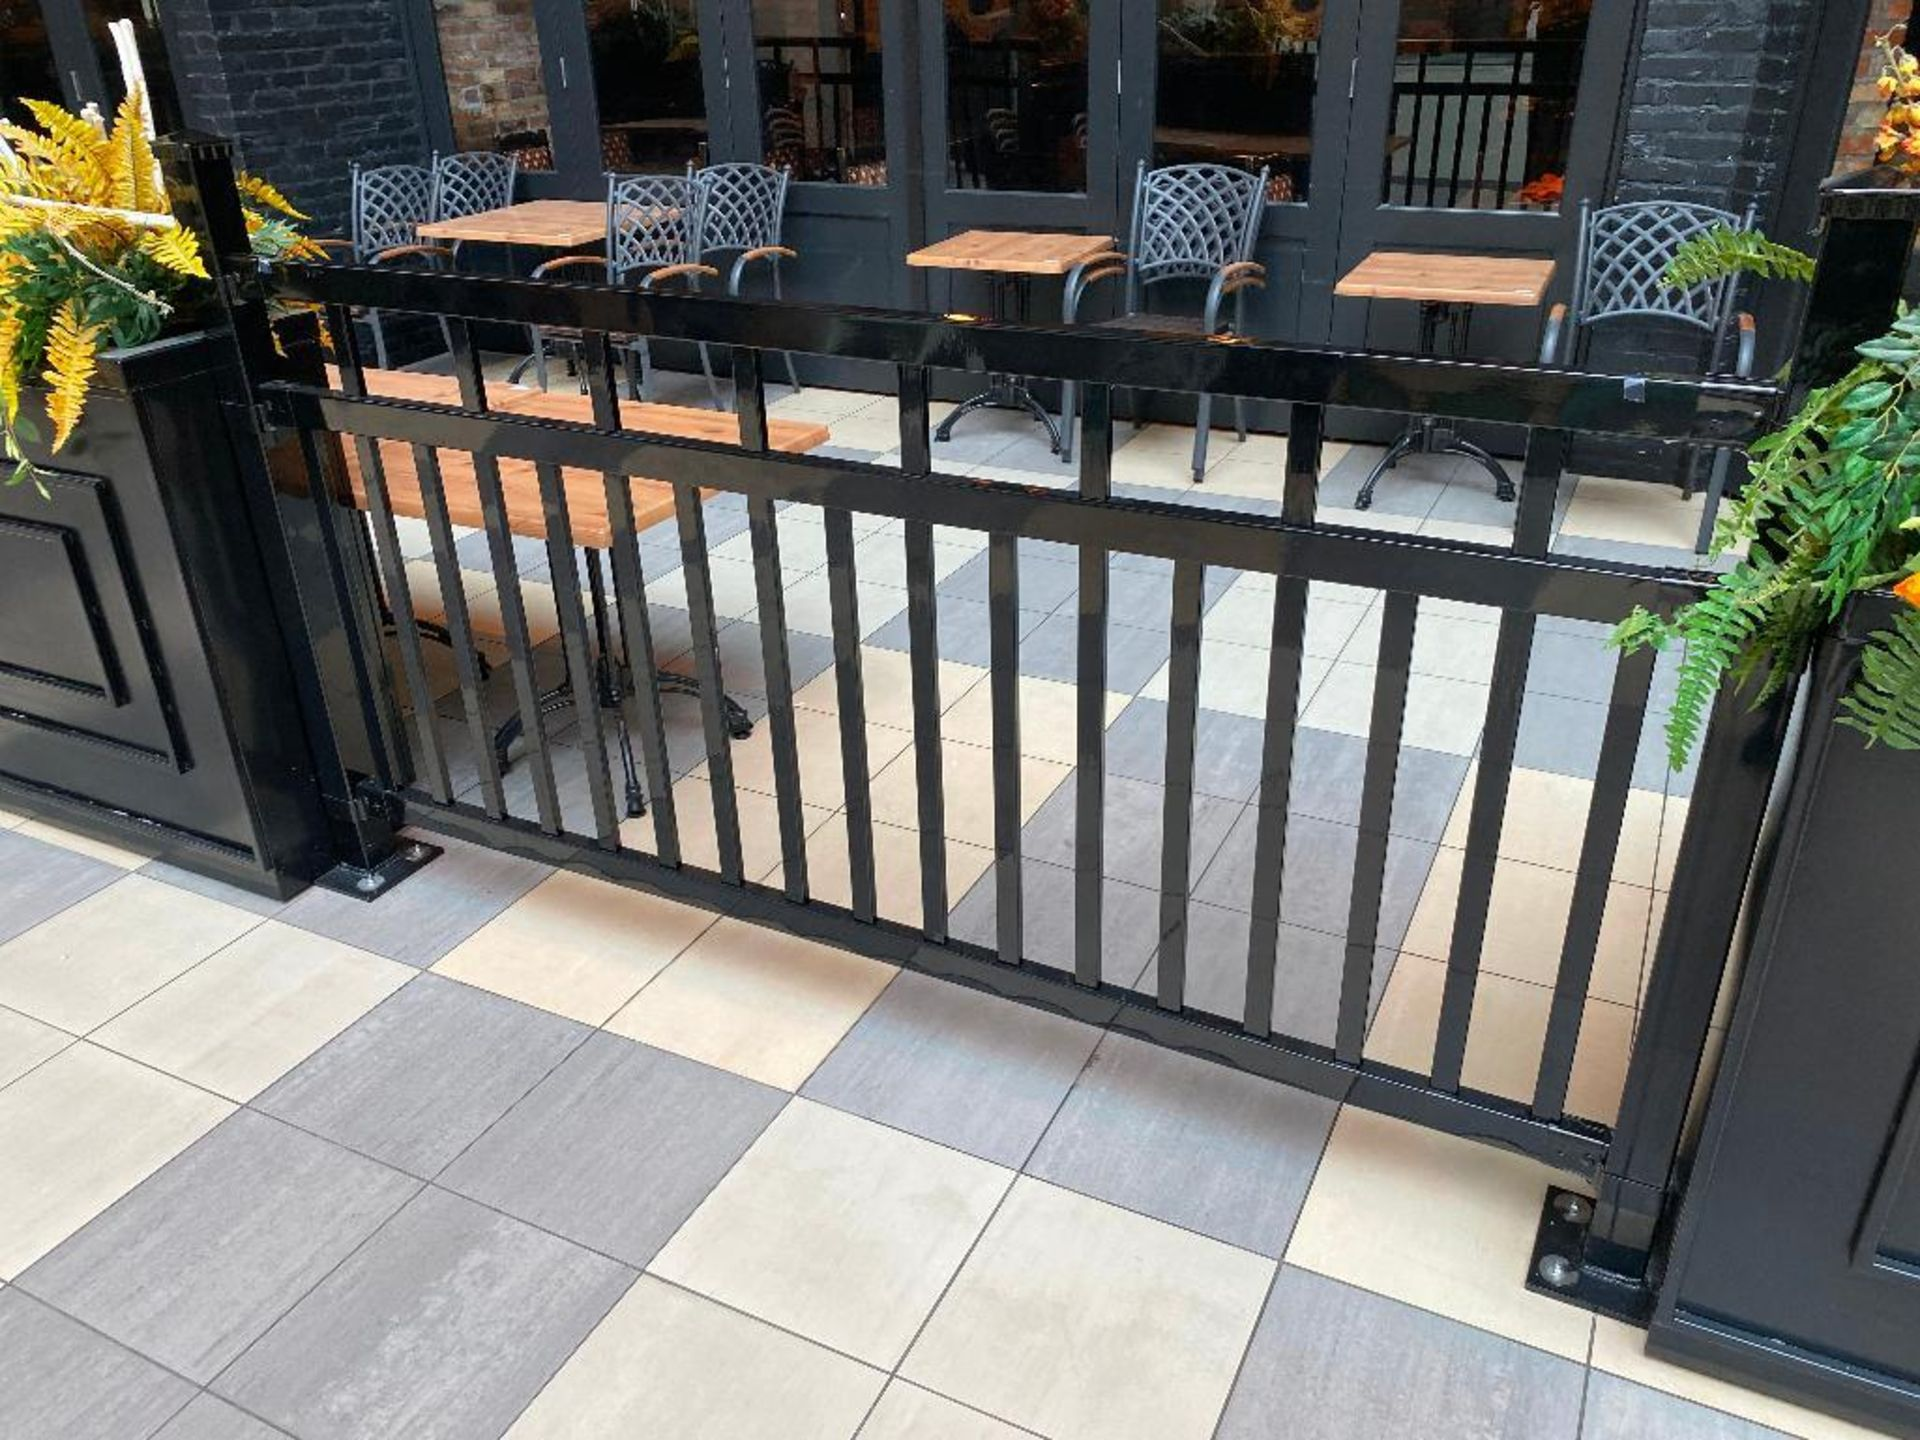 APPROX. 60' OF BLACK METAL RAILING & PLANTER - NOTE: REQUIRES REMOVAL FROM FLOOR, PLEASE INSPECT - Image 2 of 4